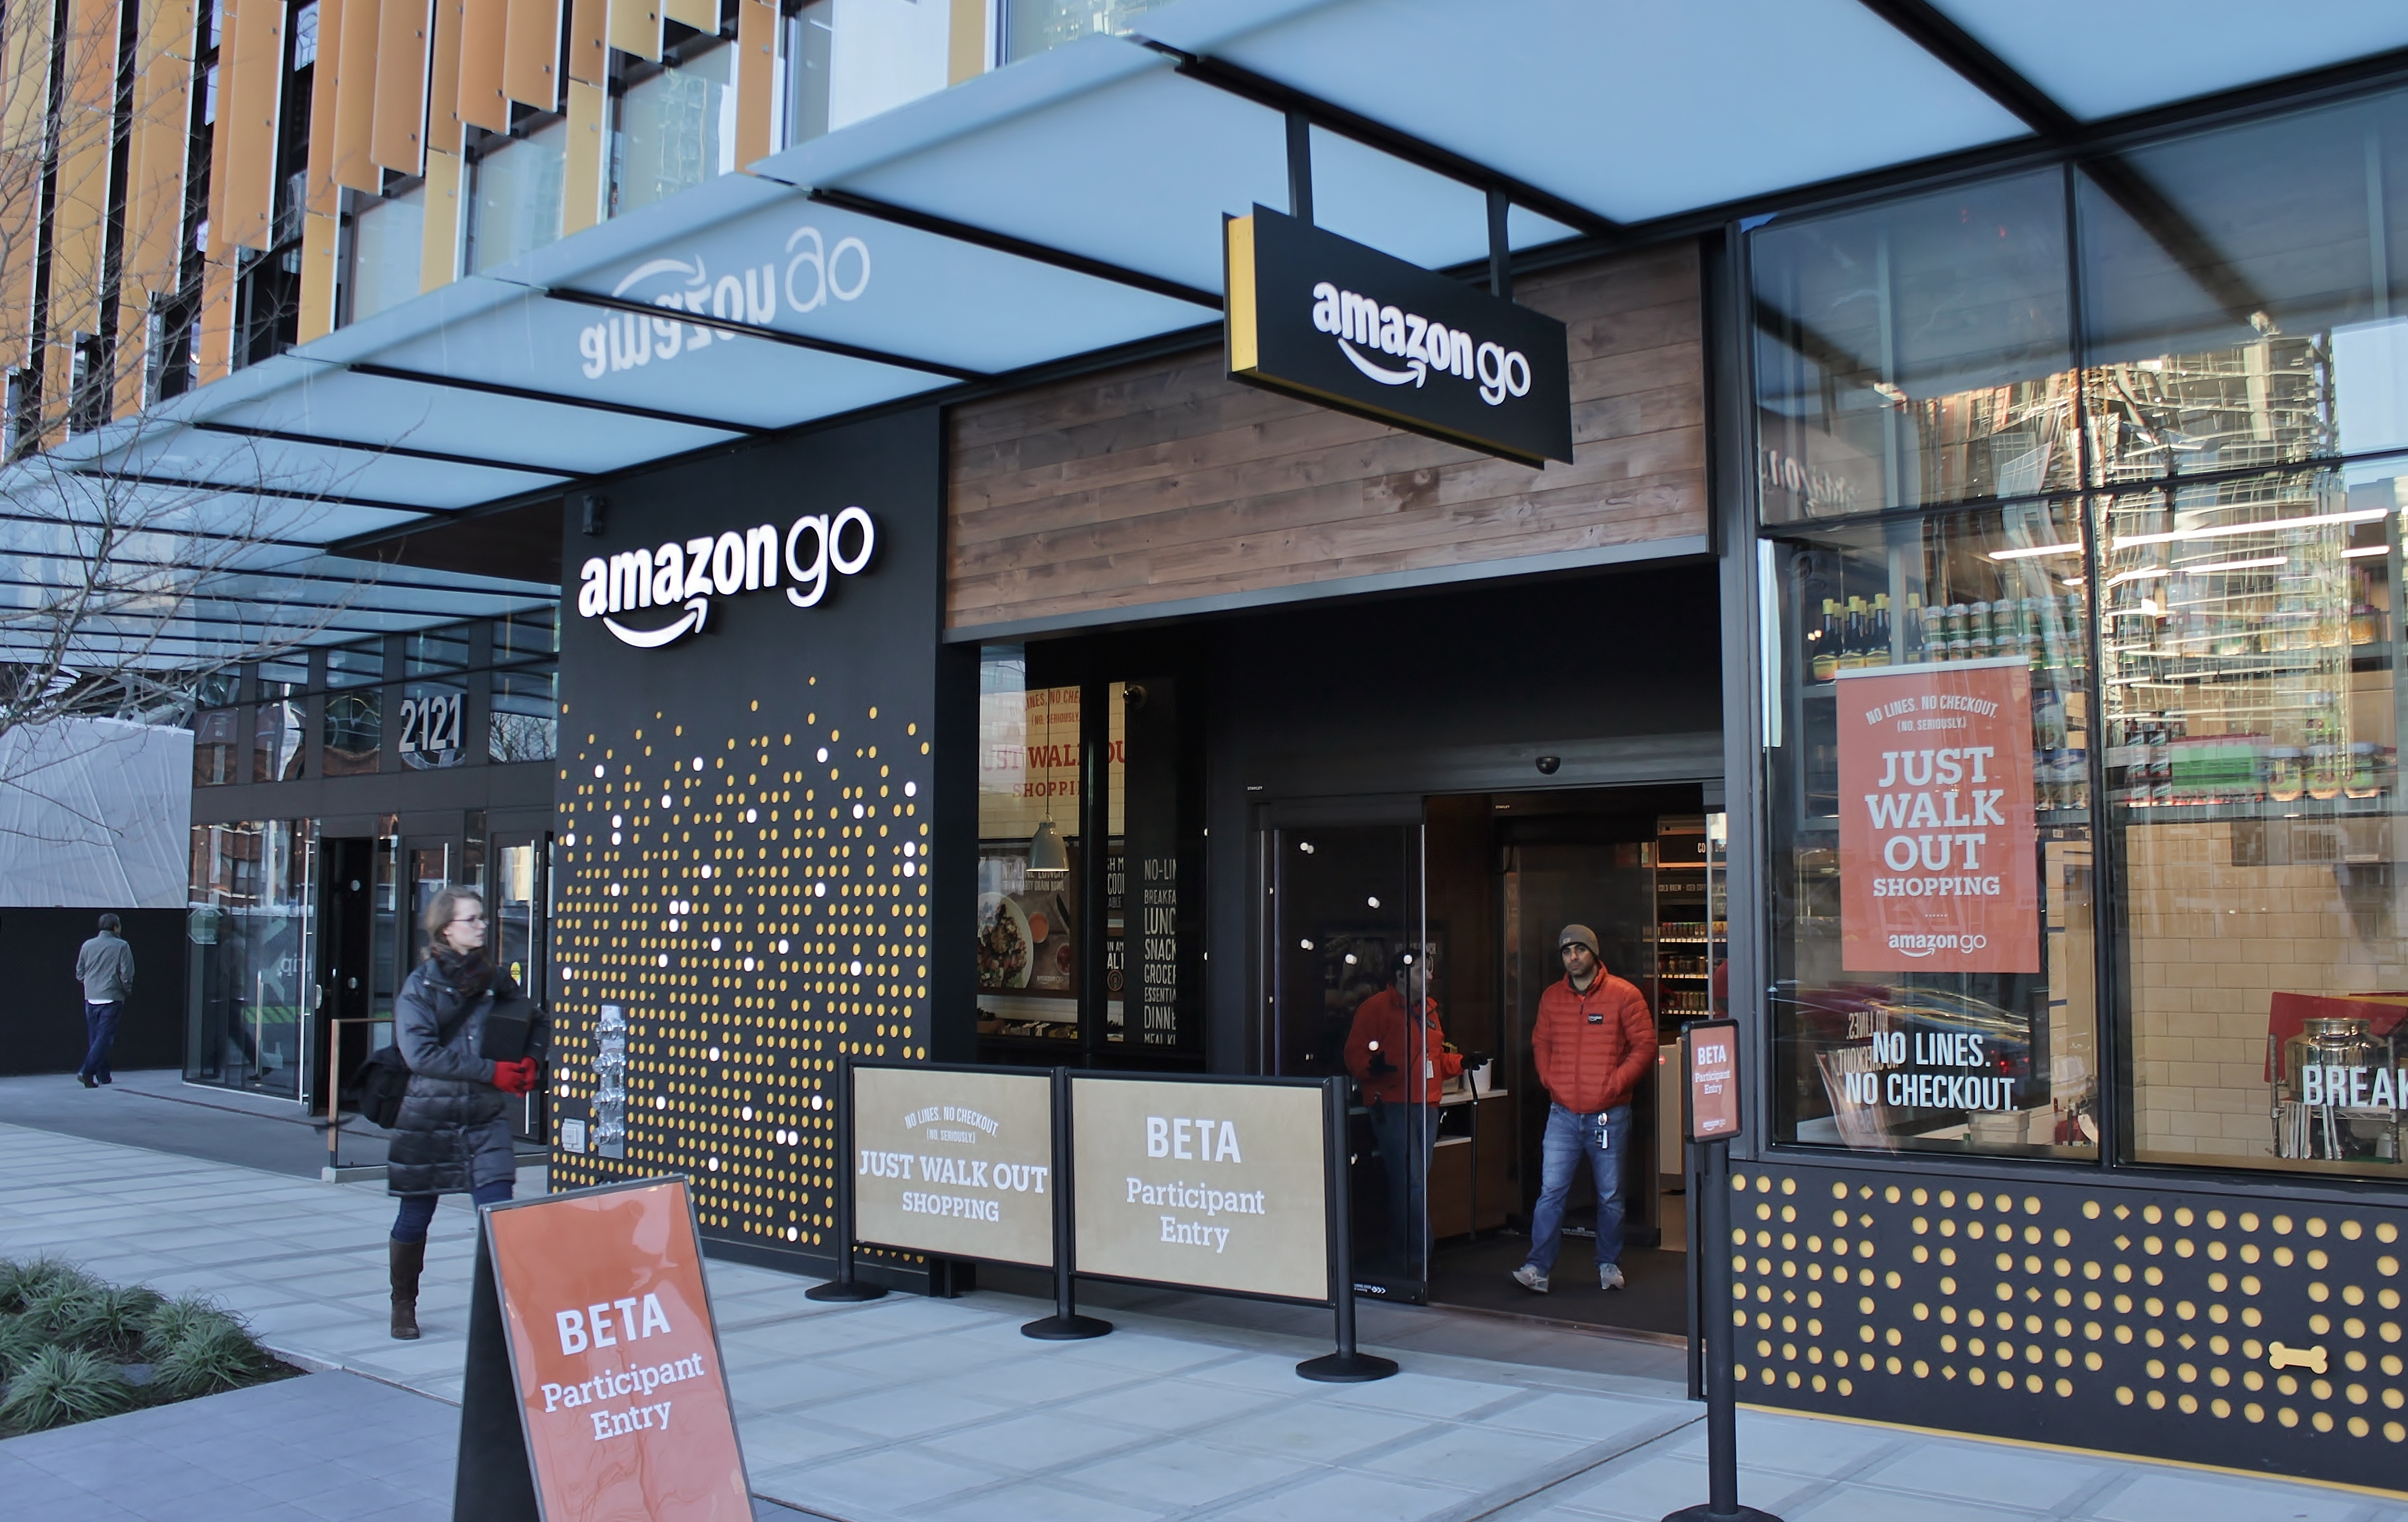 Best And Less Stores Melbourne Amazon Go Wikipedia